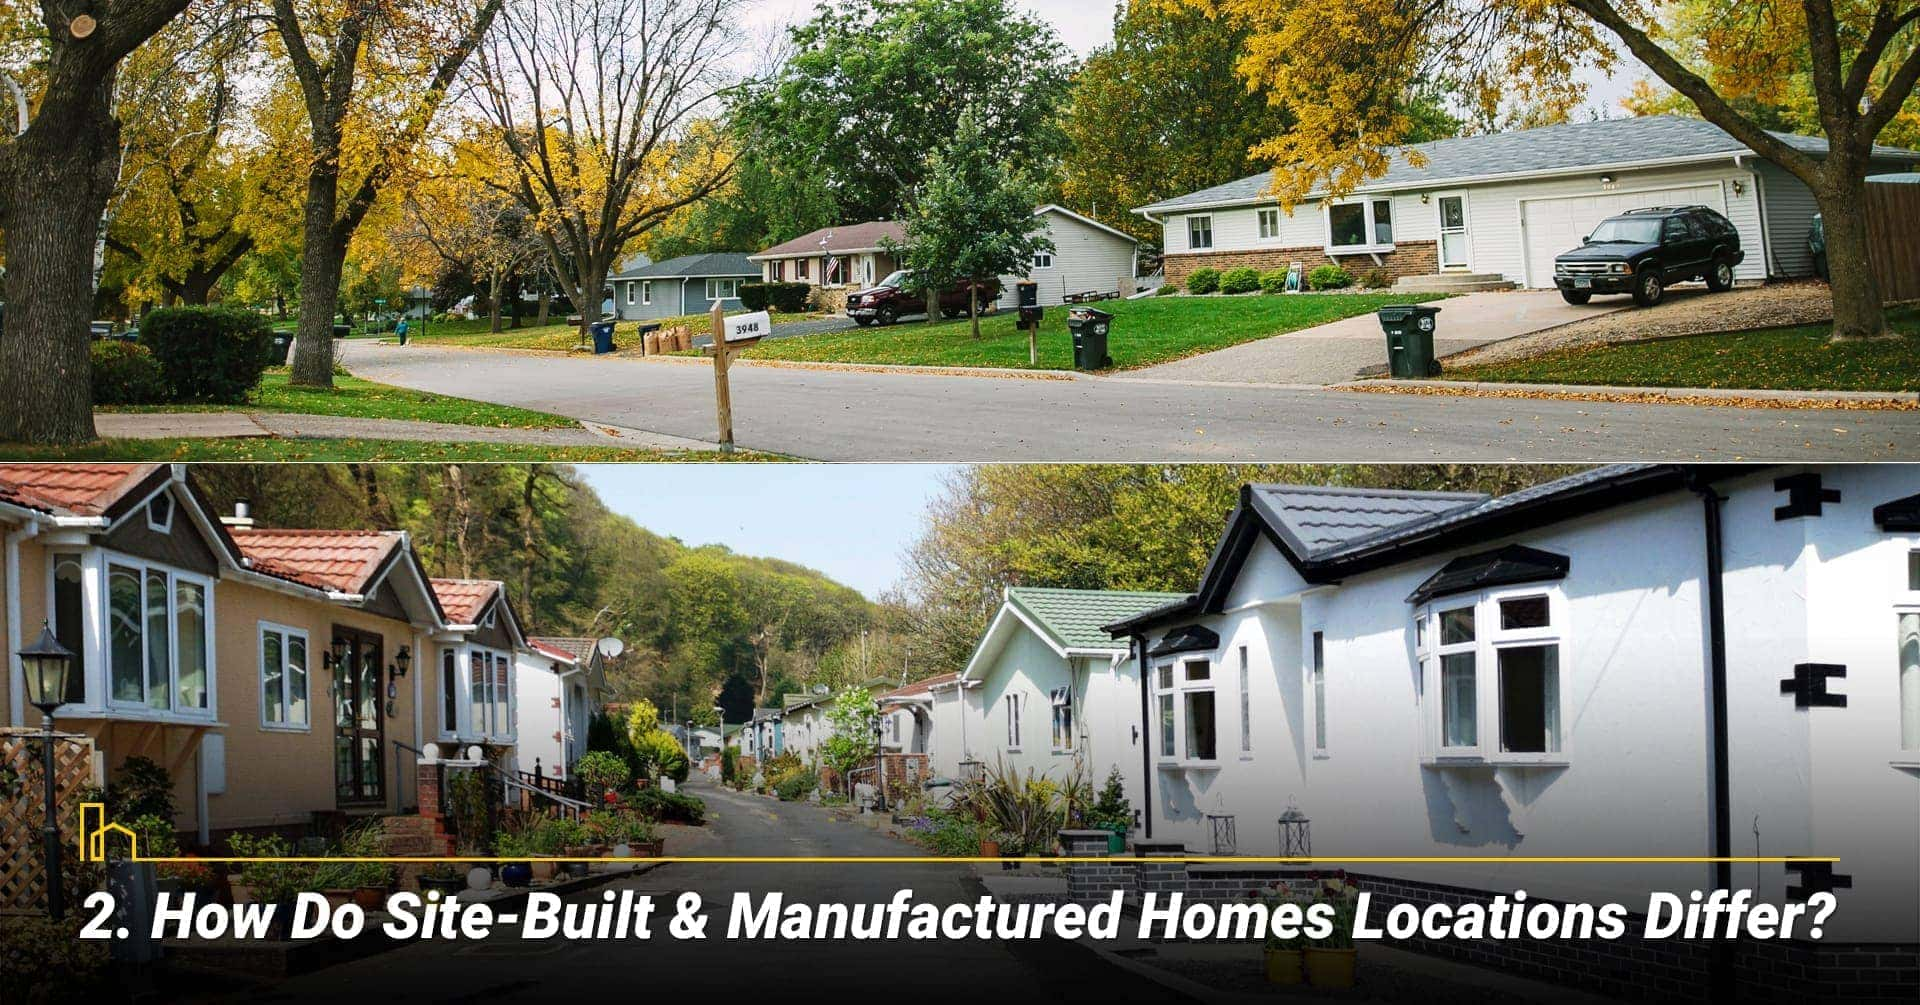 How Do Site-Built & Manufactured Homes Locations Differ? locations for site-built and manufactured homes